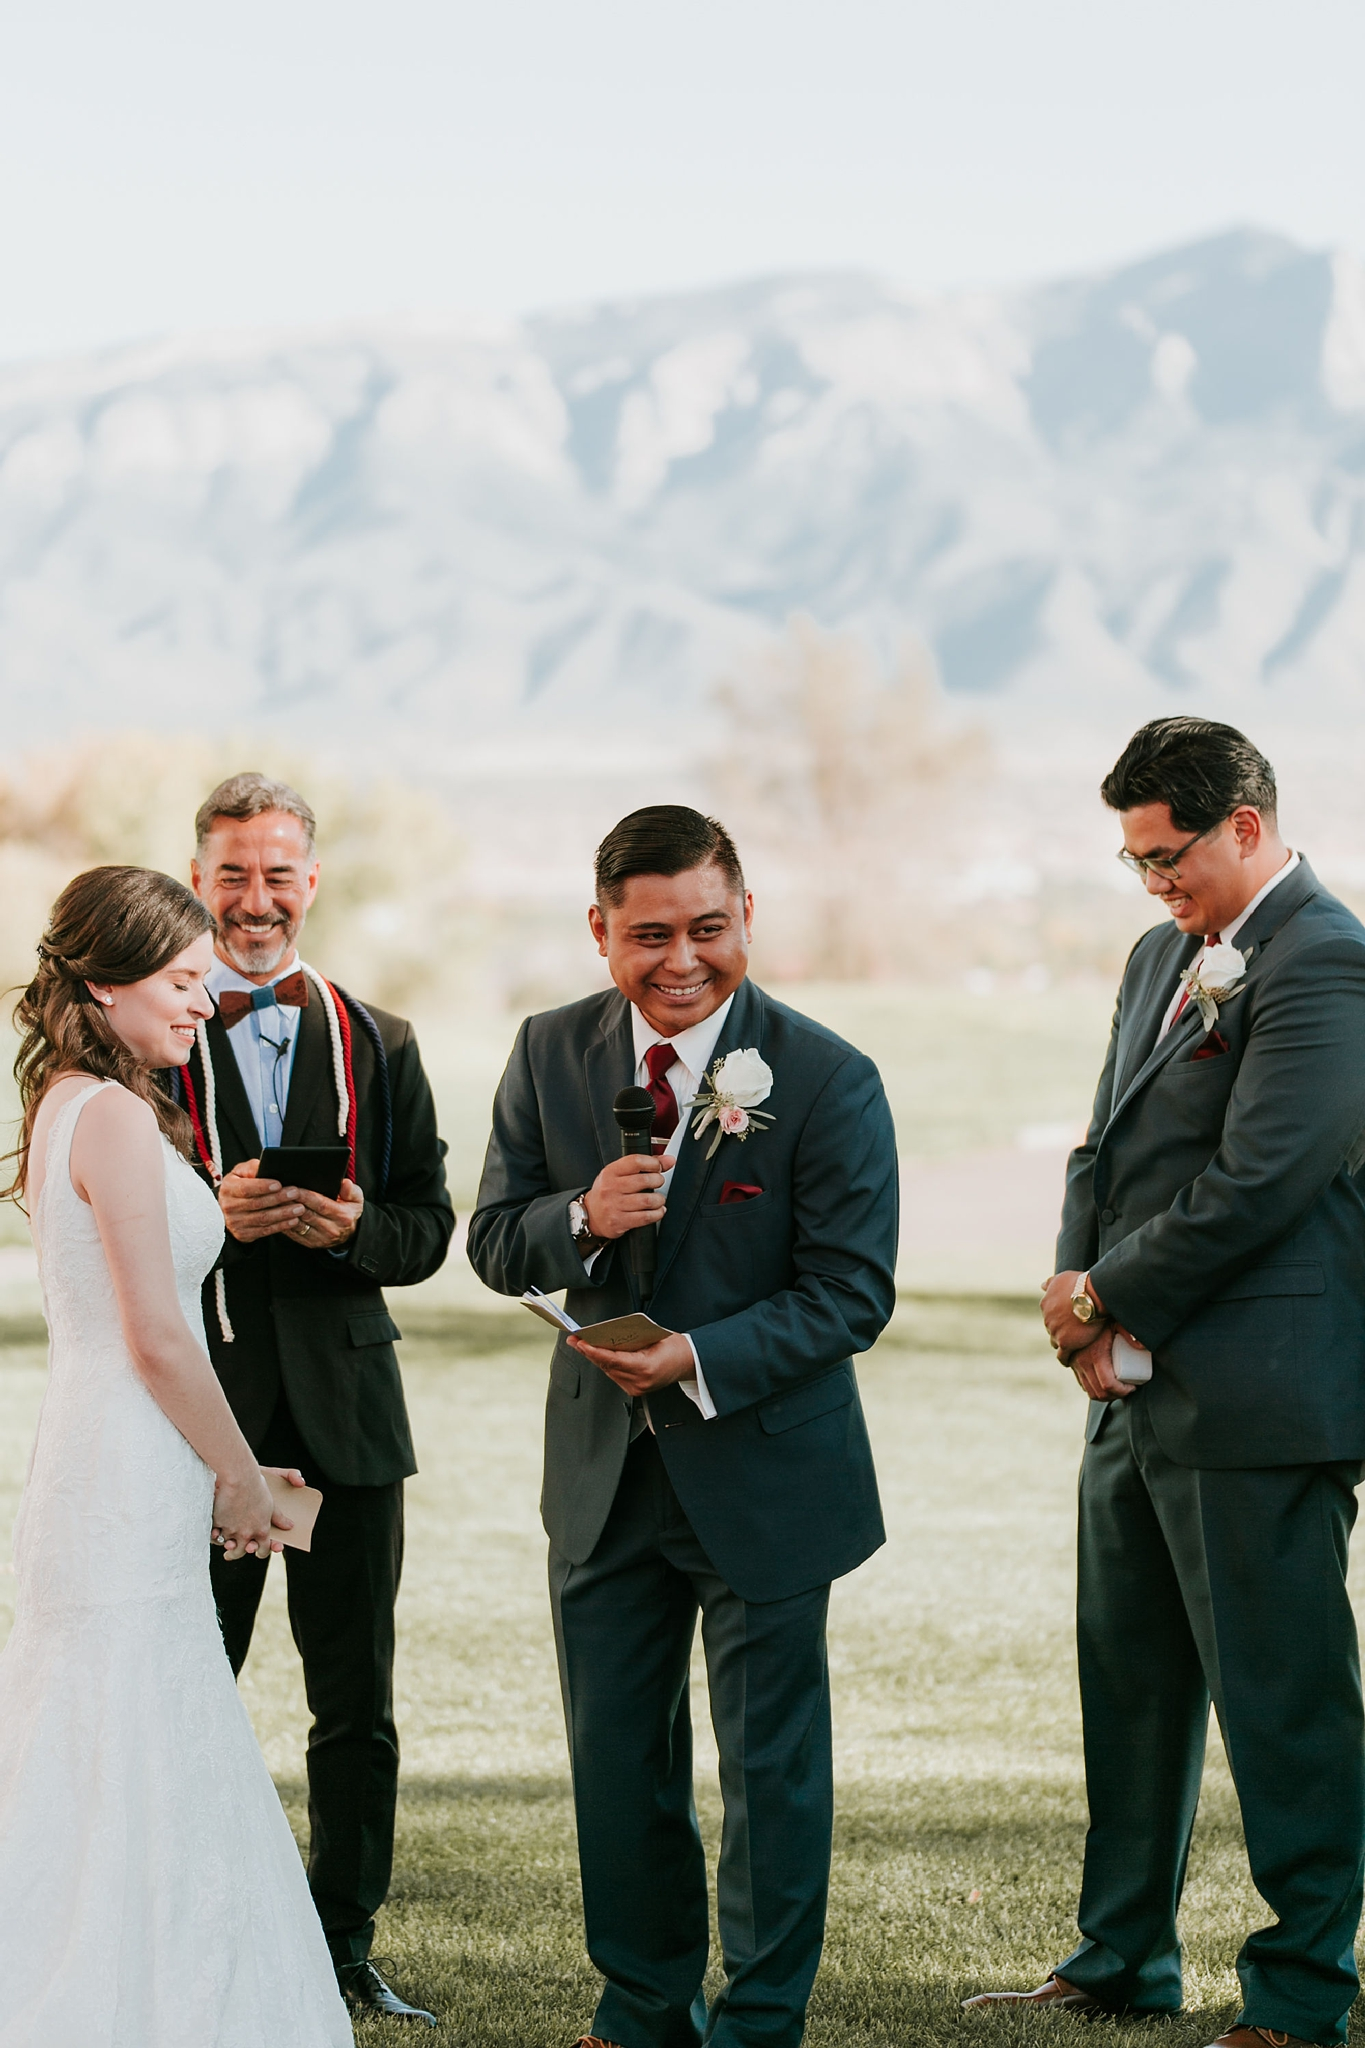 Alicia+lucia+photography+-+albuquerque+wedding+photographer+-+santa+fe+wedding+photography+-+new+mexico+wedding+photographer+-+new+mexico+wedding+-+wedding+vows+-+writing+your+own+vows+-+wedding+inspo_0004.jpg